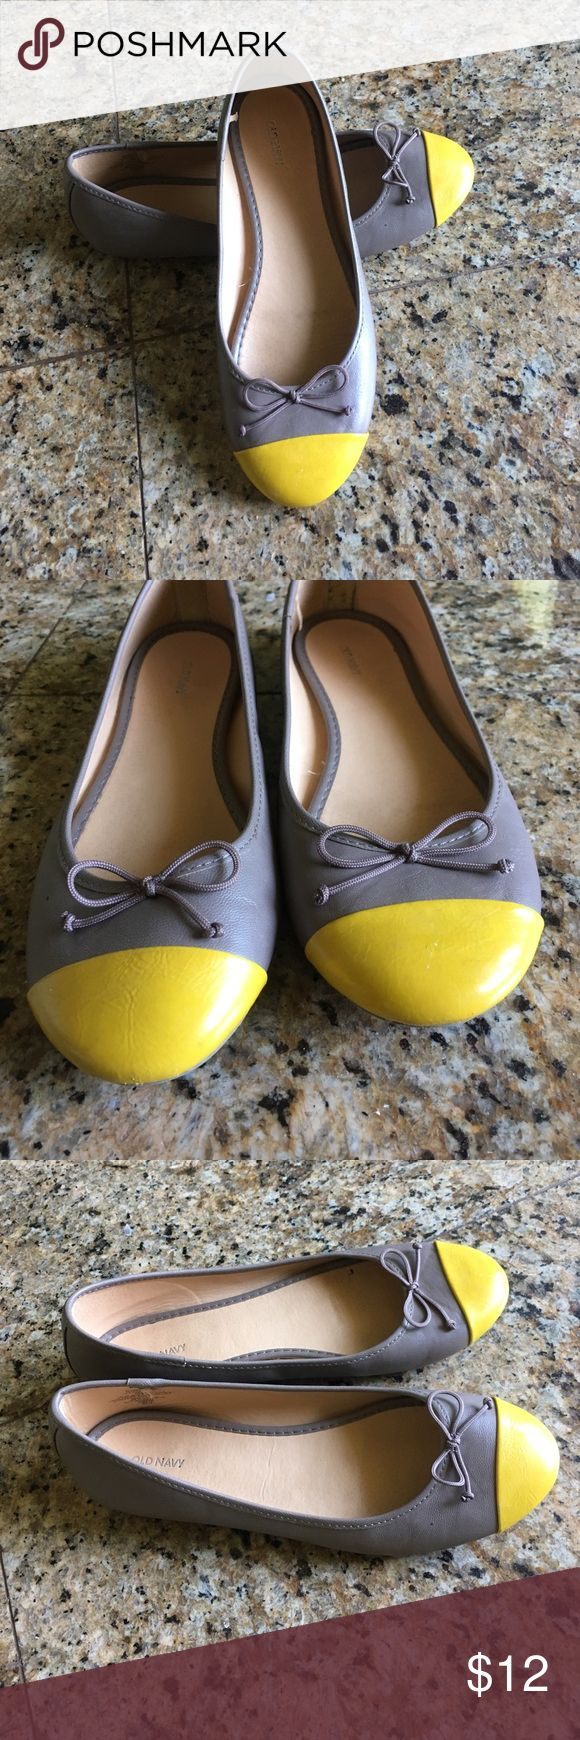 Old Navy ballet flats Old Navy ballet flats. Grey with yellow toe. Grey bow. Very cute and comfortable. Barely worn. Small scuff on right, barely shows. ❤️ Old Navy Shoes Flats & Loafers